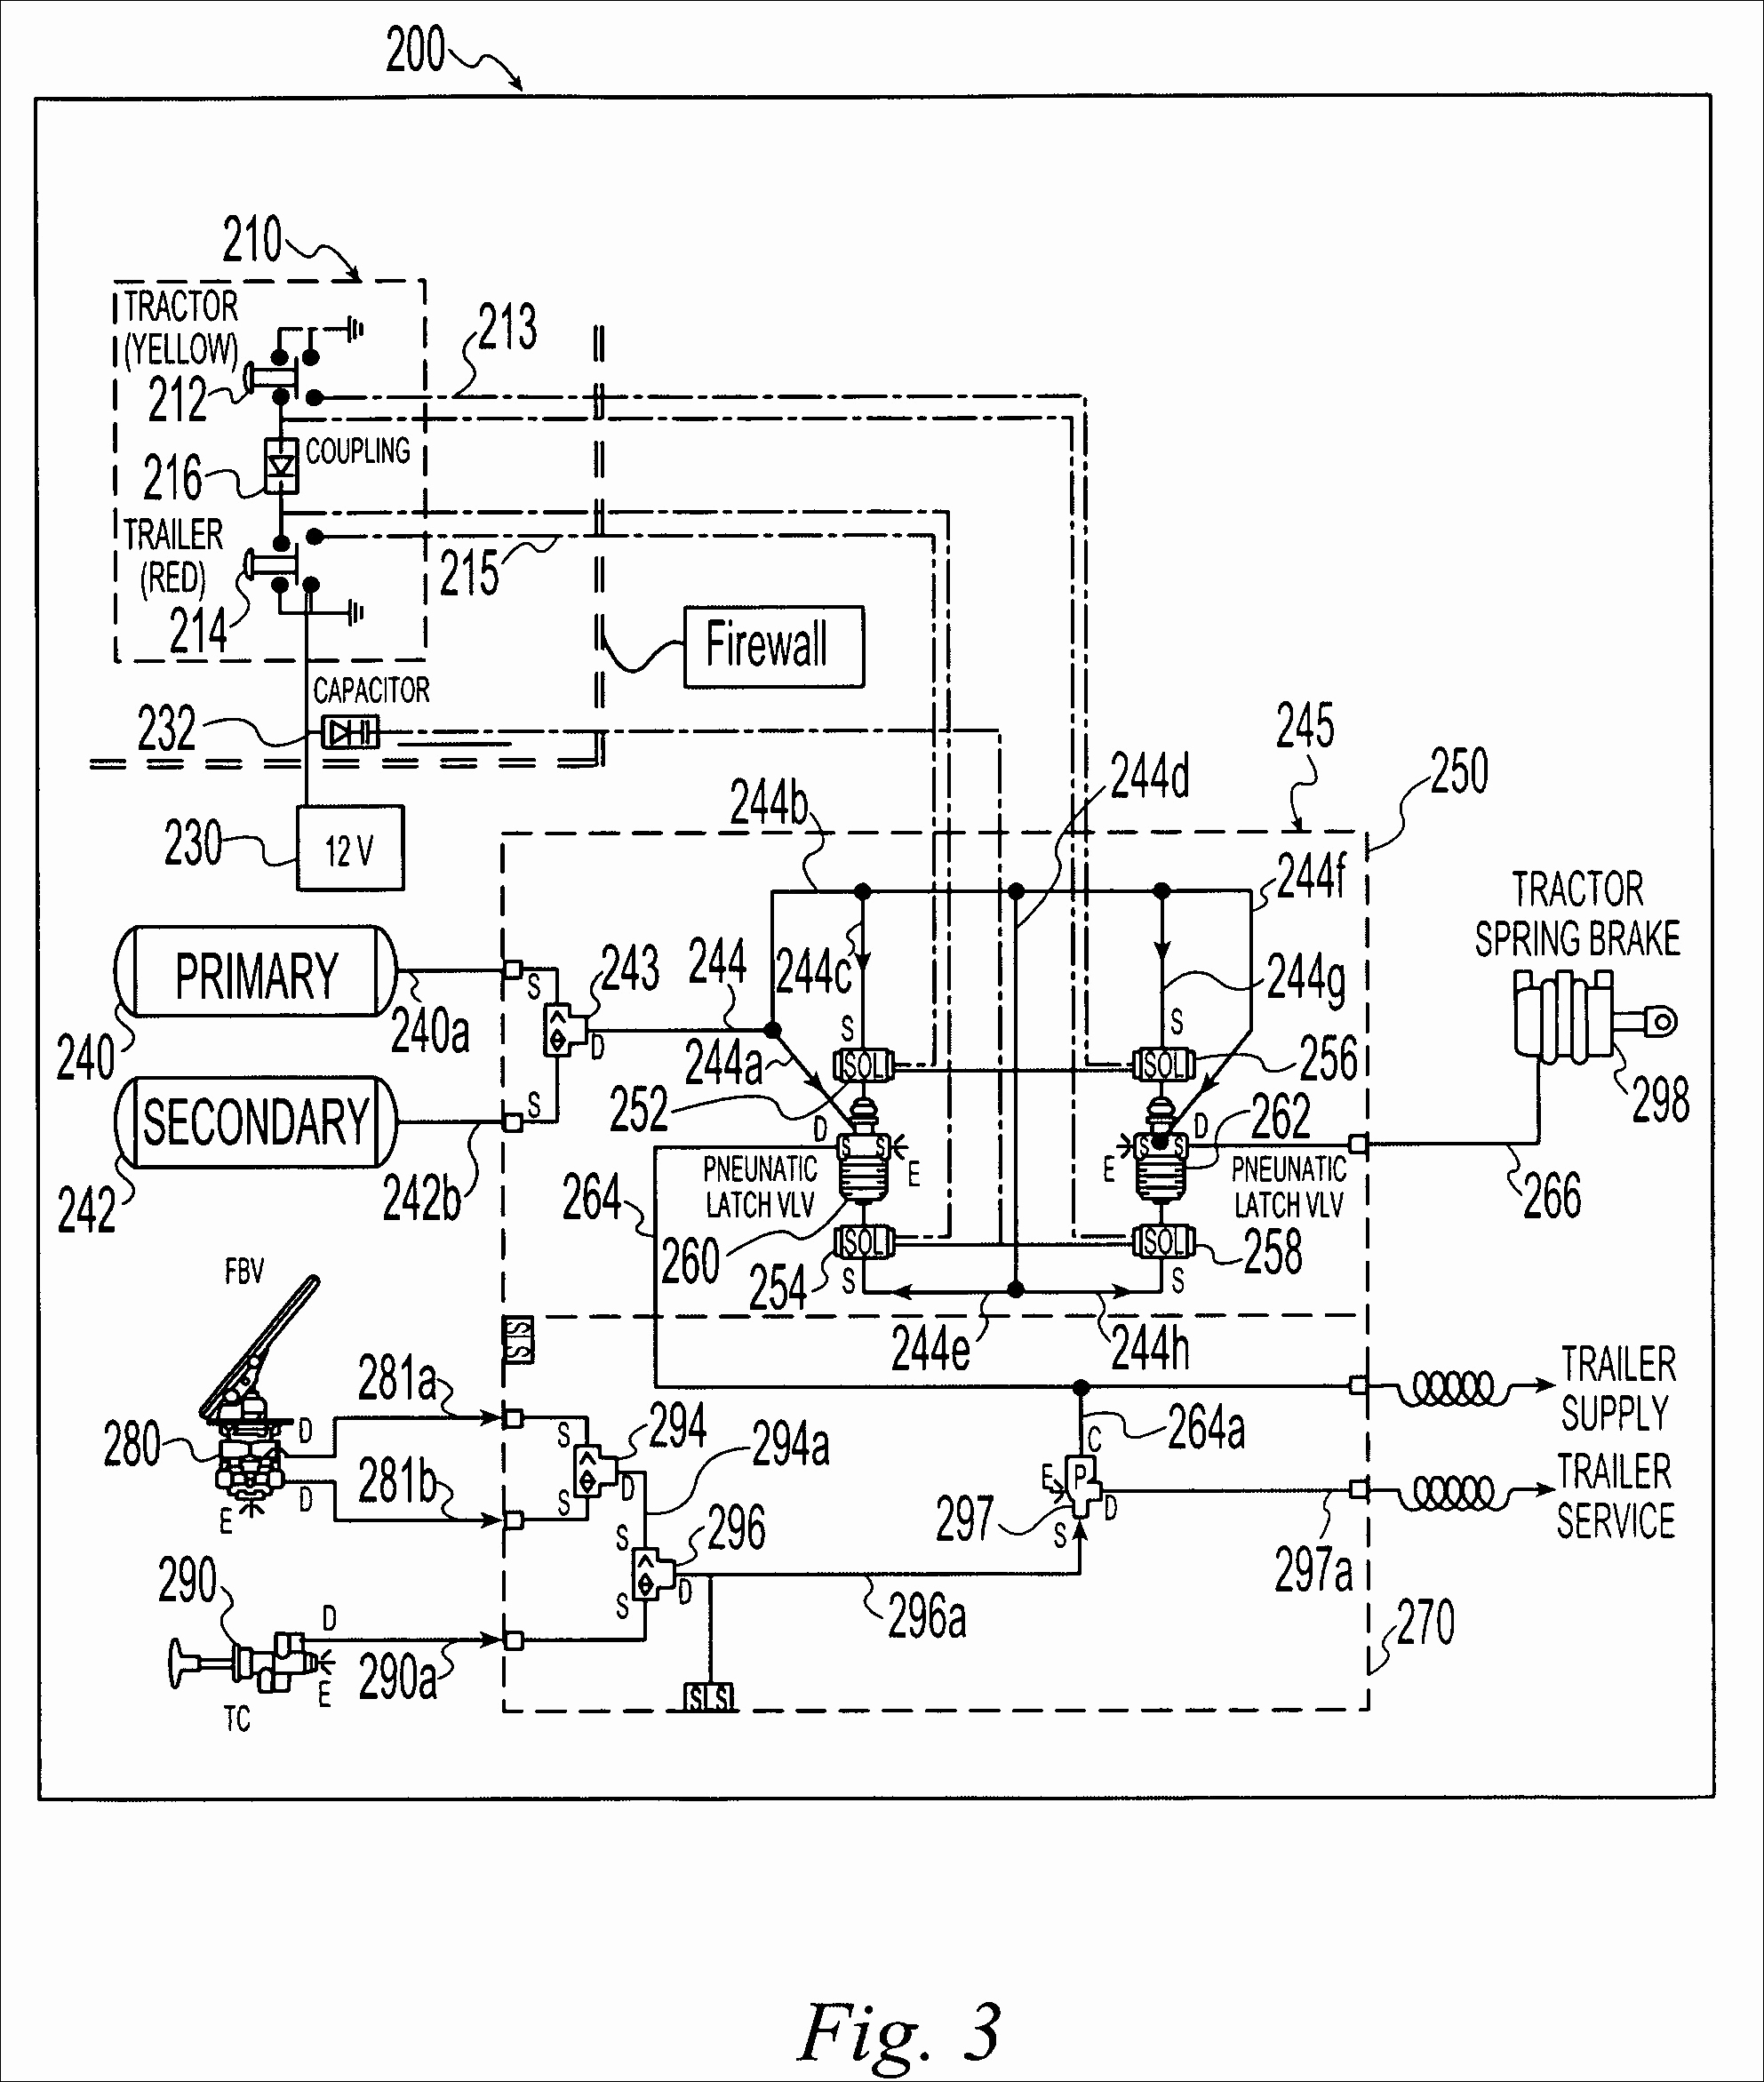 [DIAGRAM] 2000 Chevy Silverado 1500 Truck Wiring Diagrams